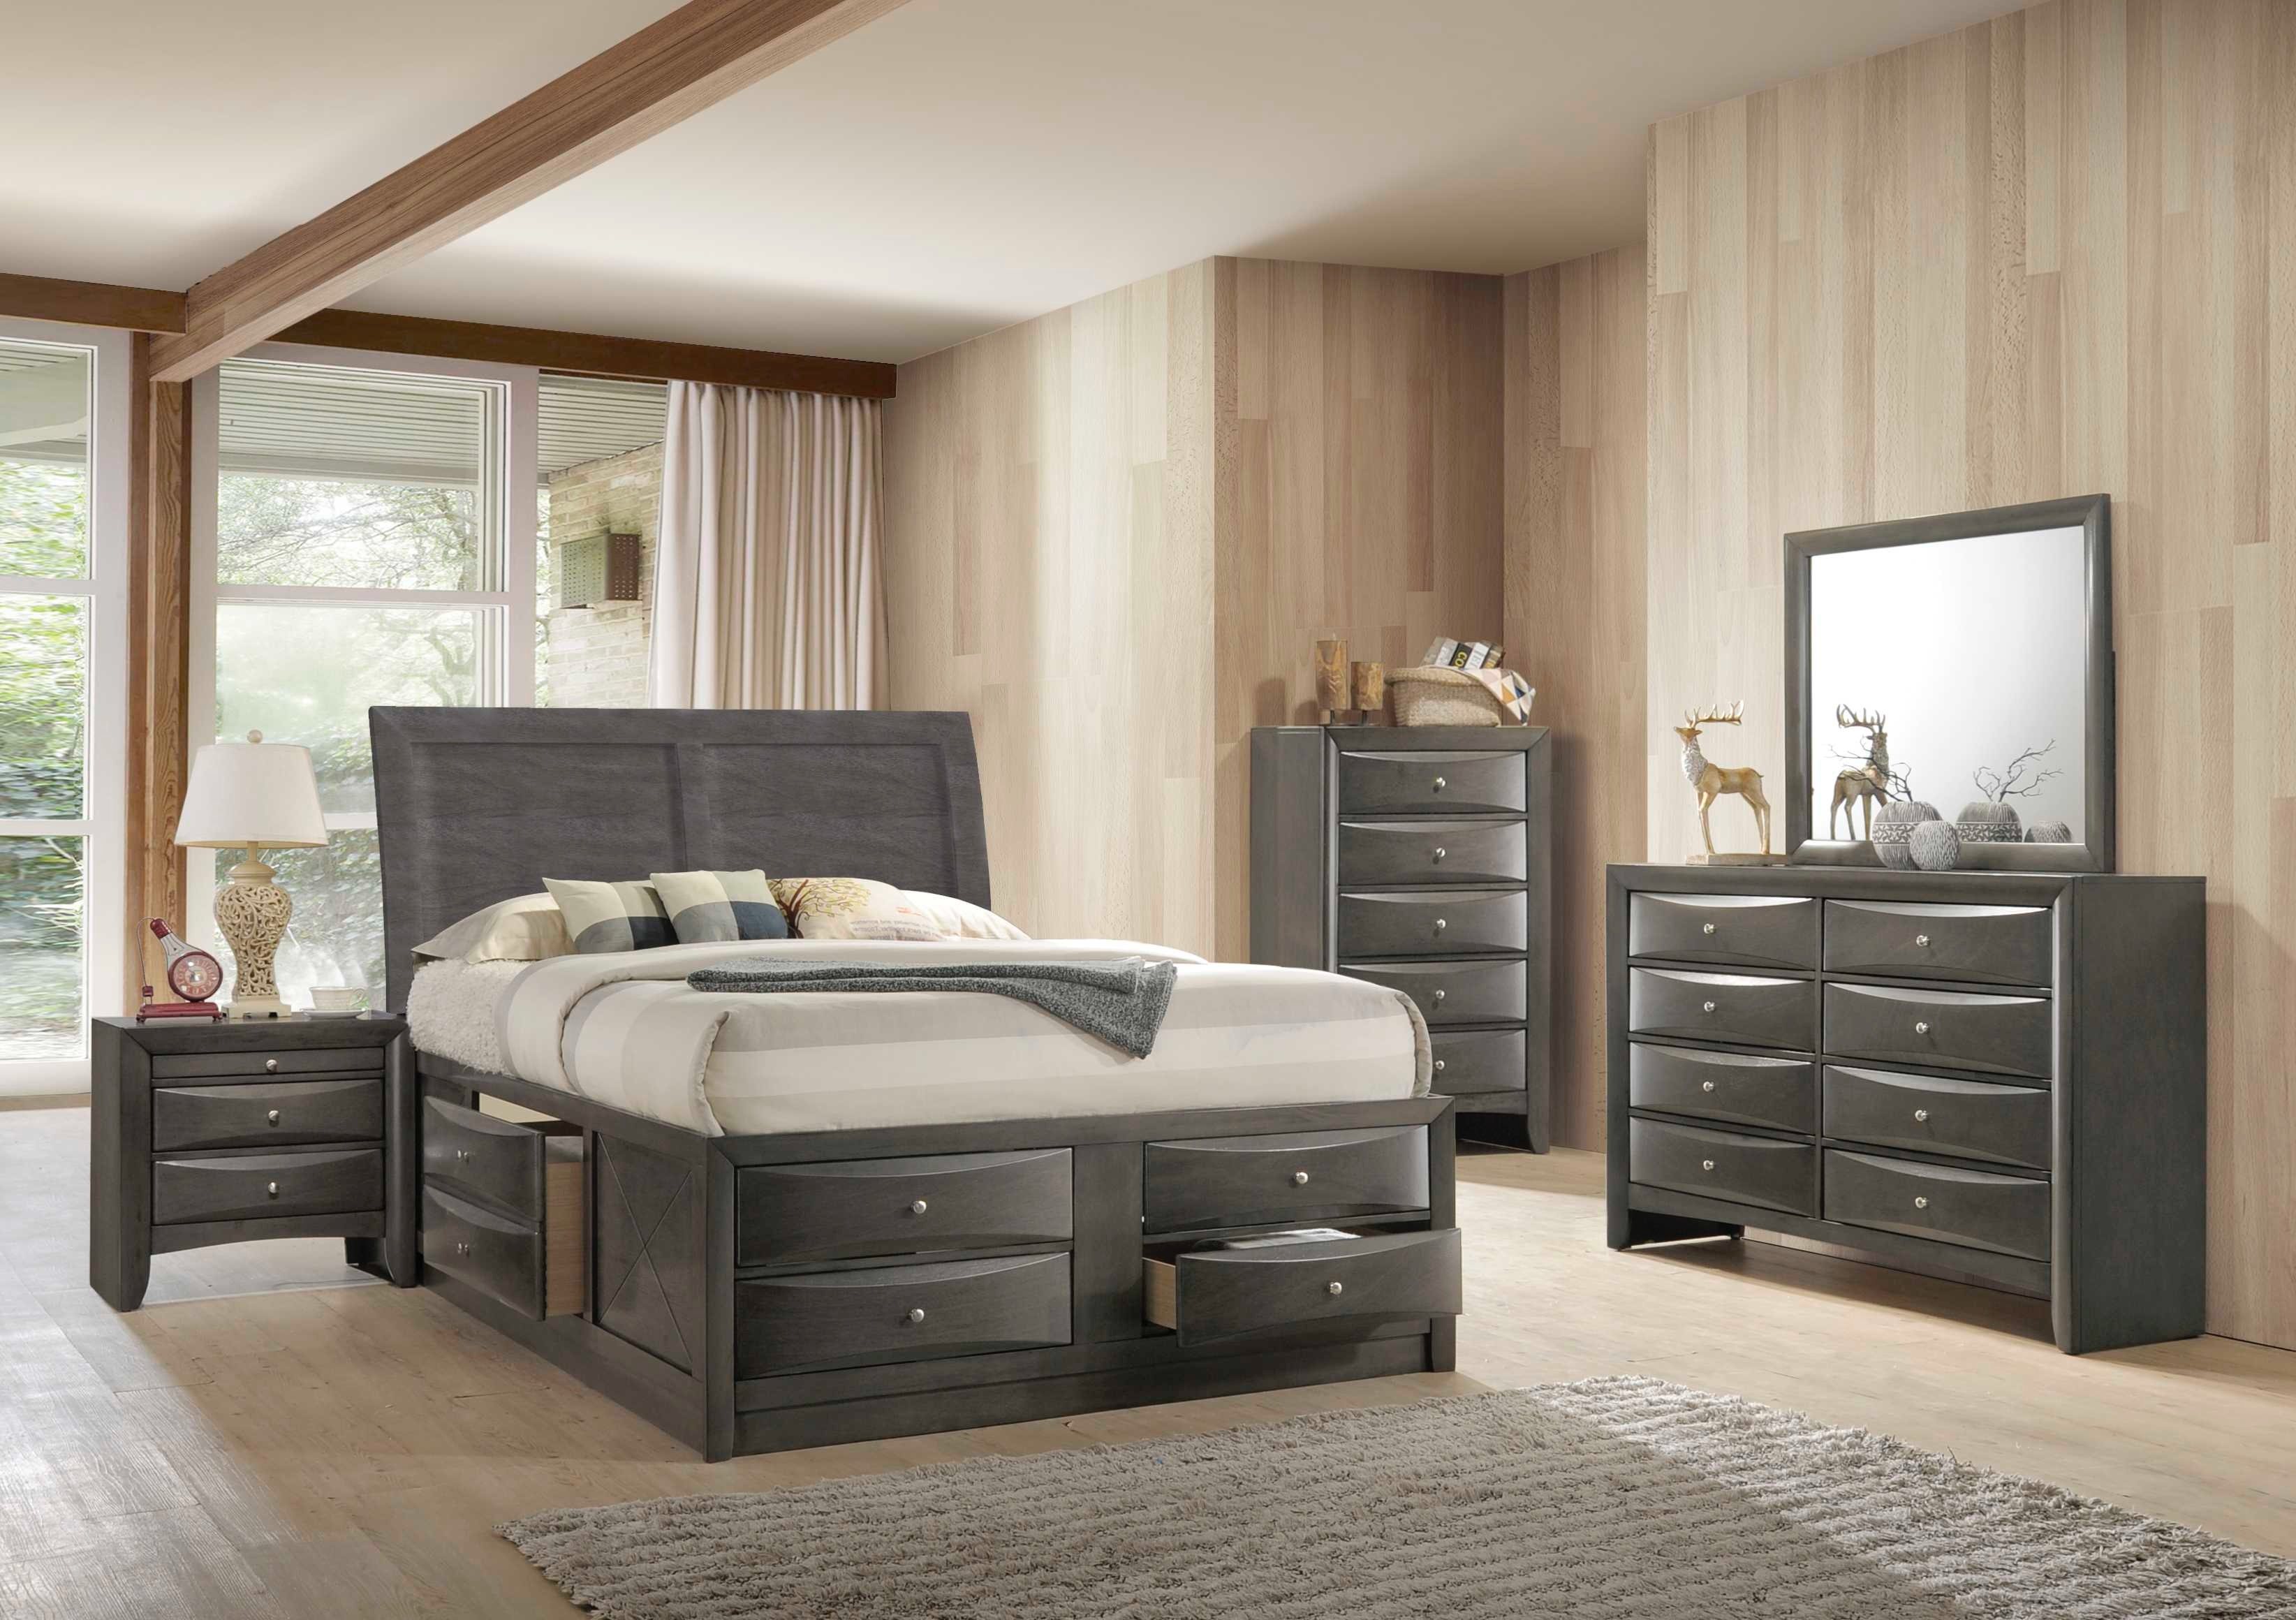 Elements International Emily Grey Storage Bedroom Including Queen Storage  Bed, Dresser, Mirror, Chest